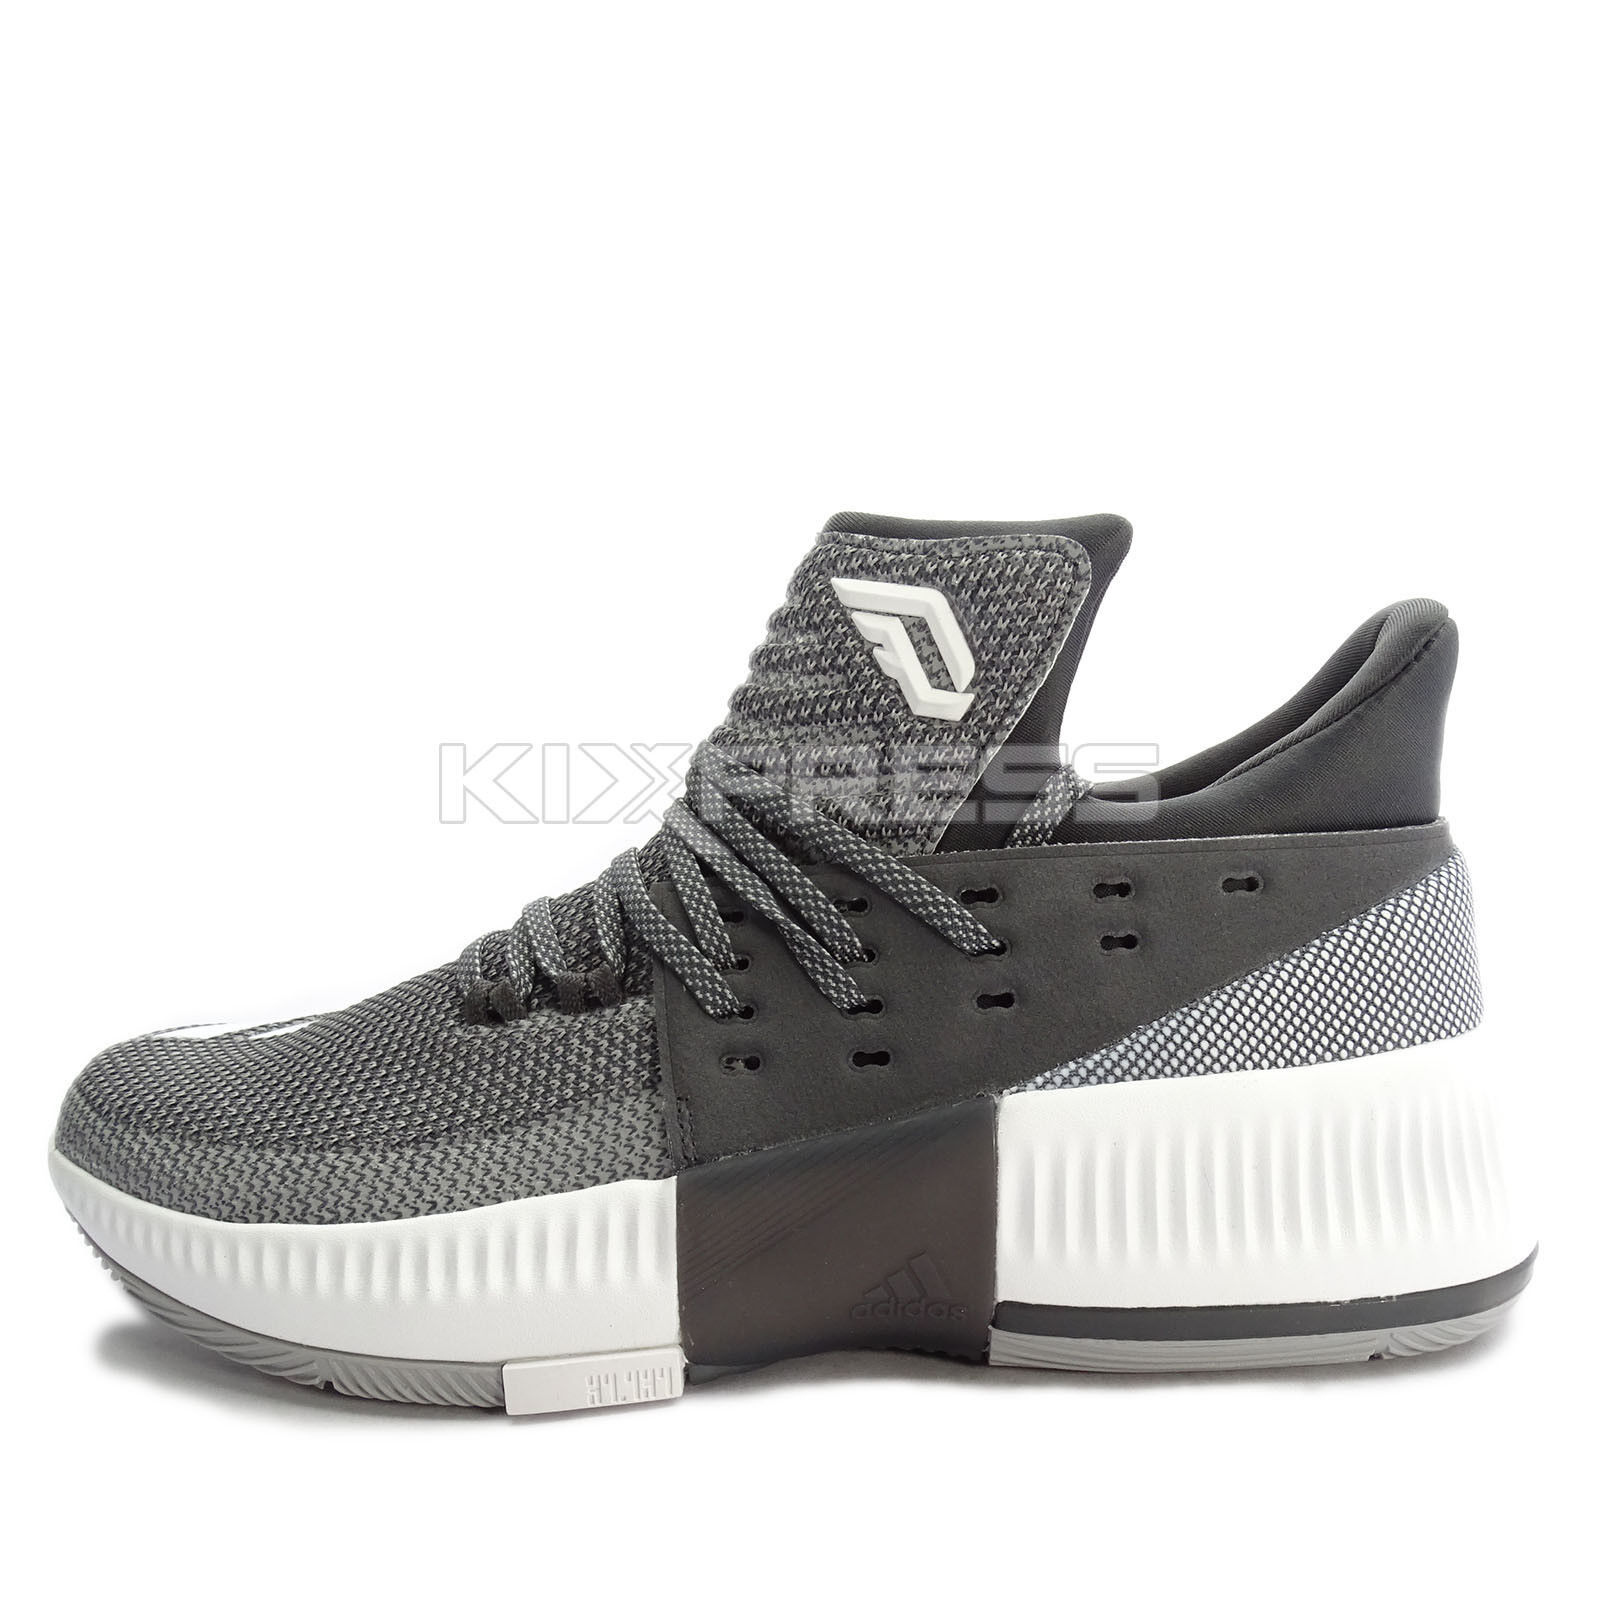 newest 25ca8 d8171 Adidas D Lillard 3 3 3  BY3207  Men Basketball Shoes Damian Black Grey